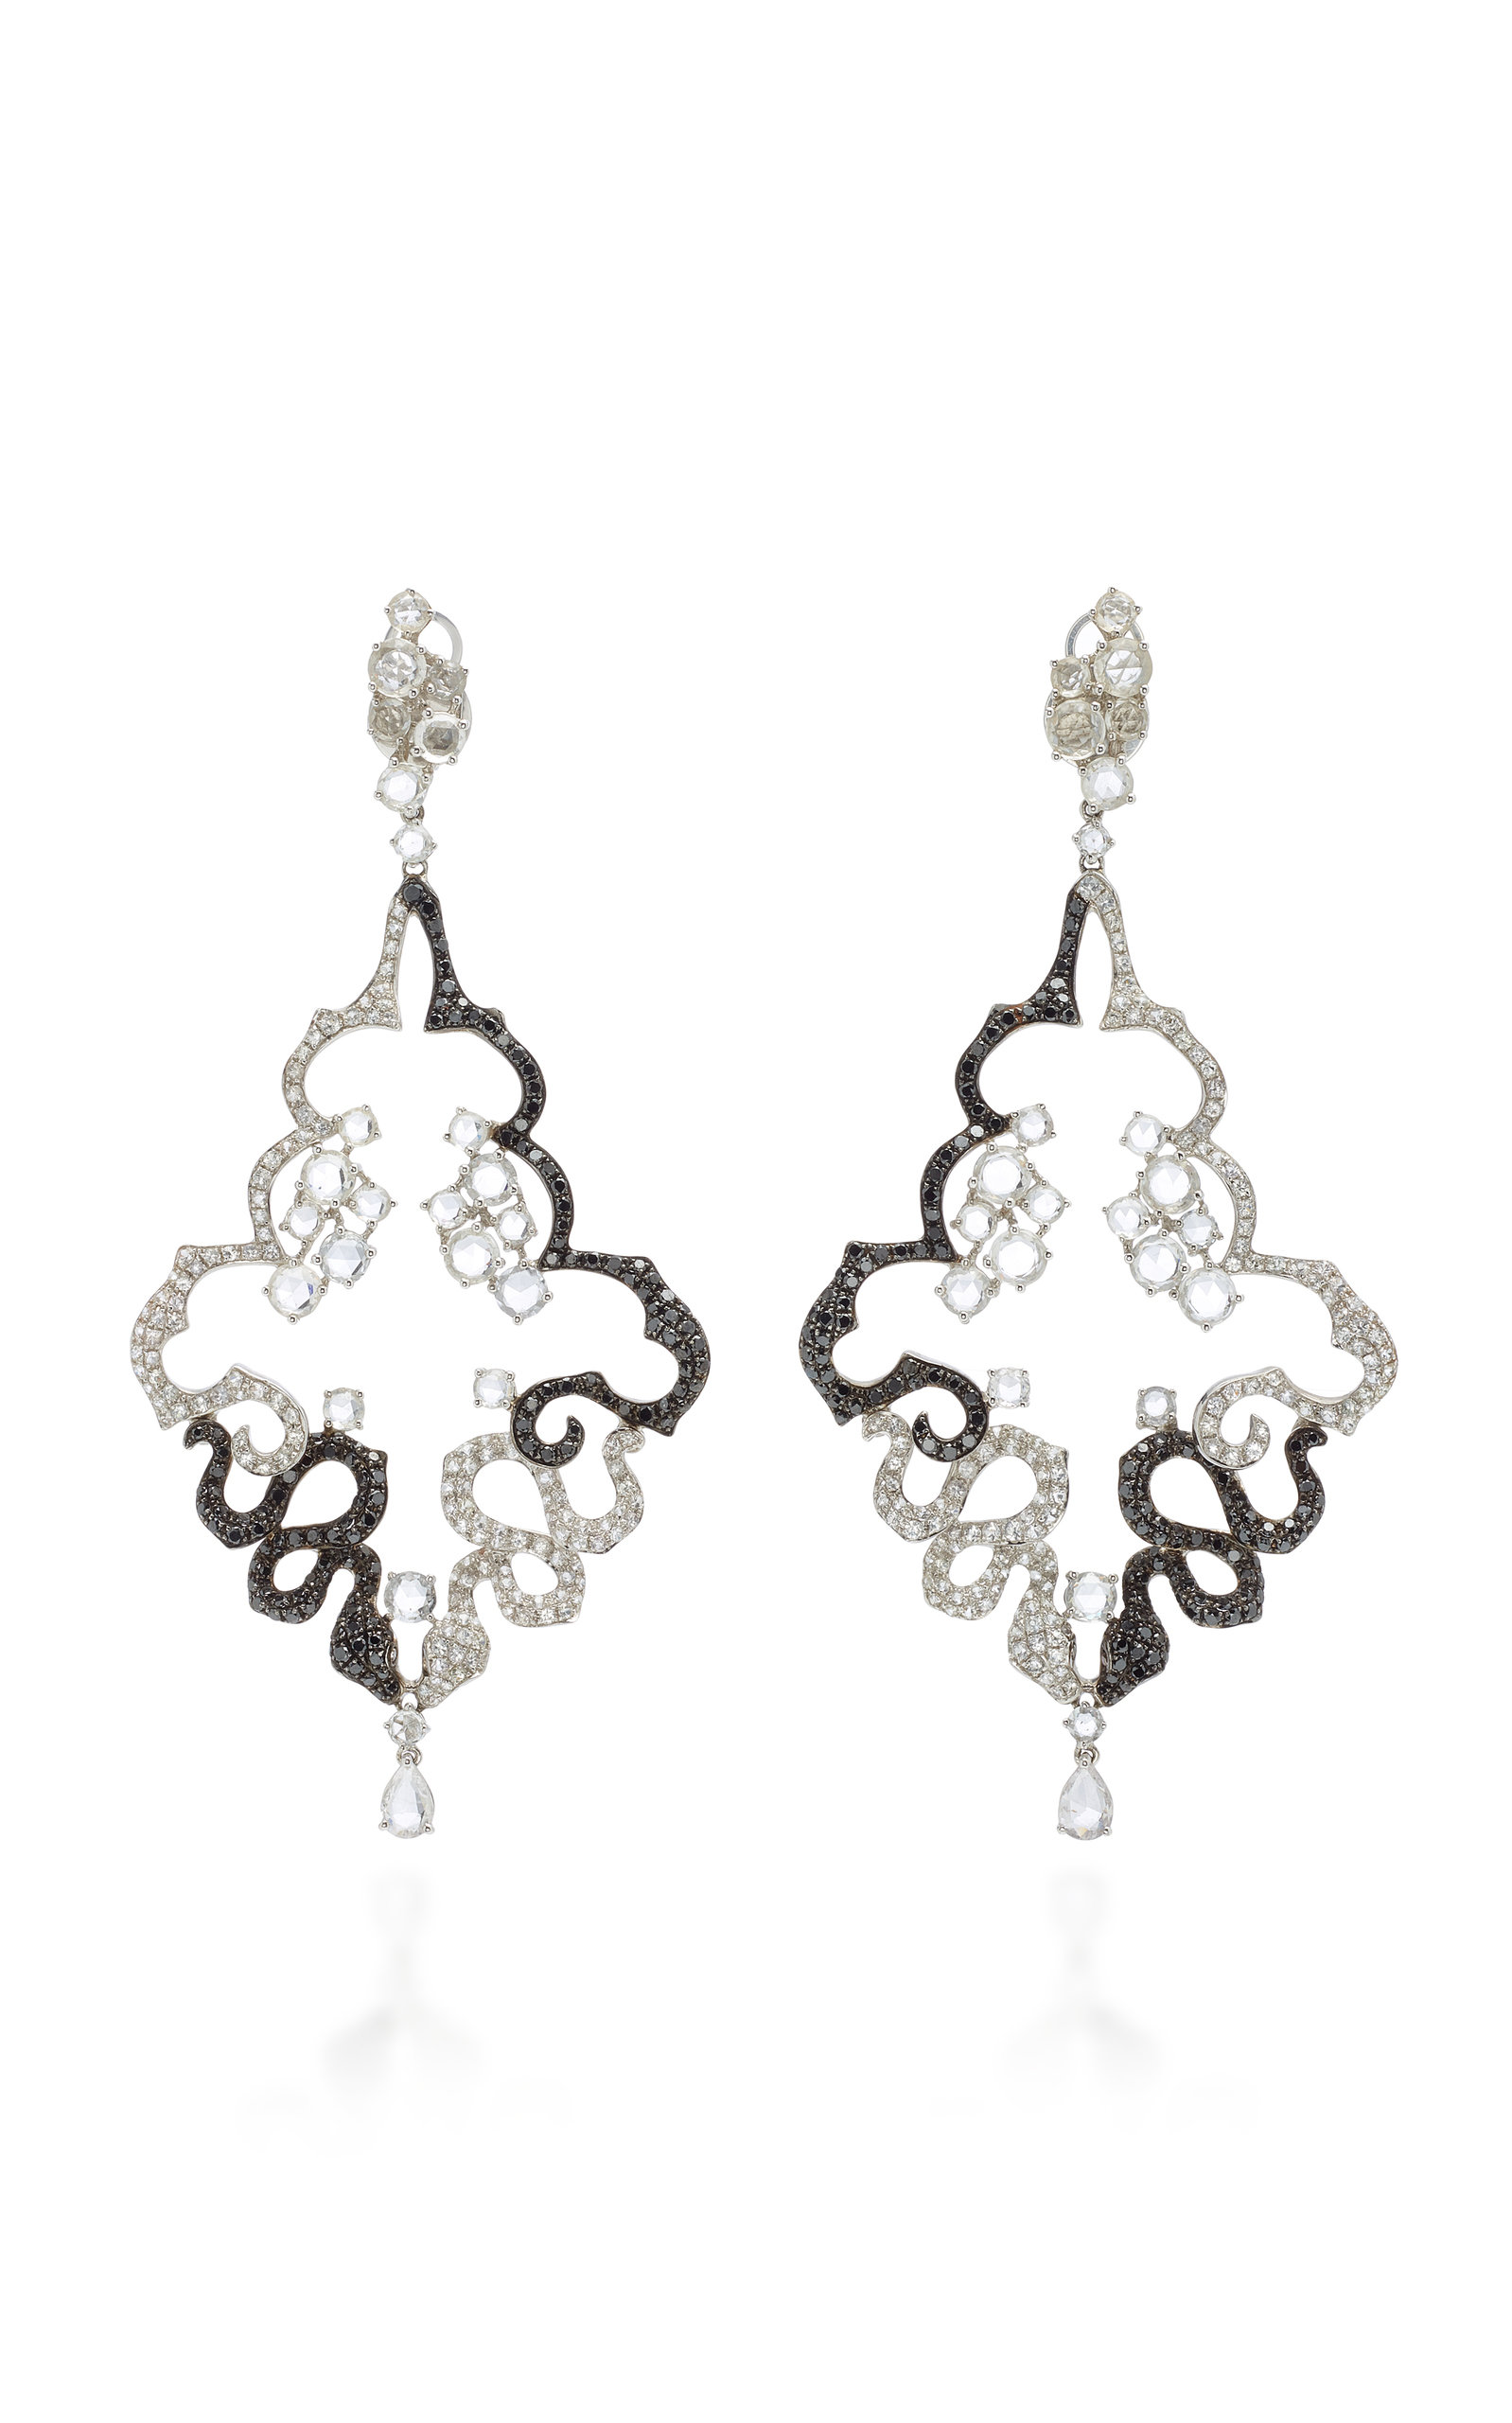 WENDY YUE 18K White Gold White Sapphire And Diamond Earrings in Black/White